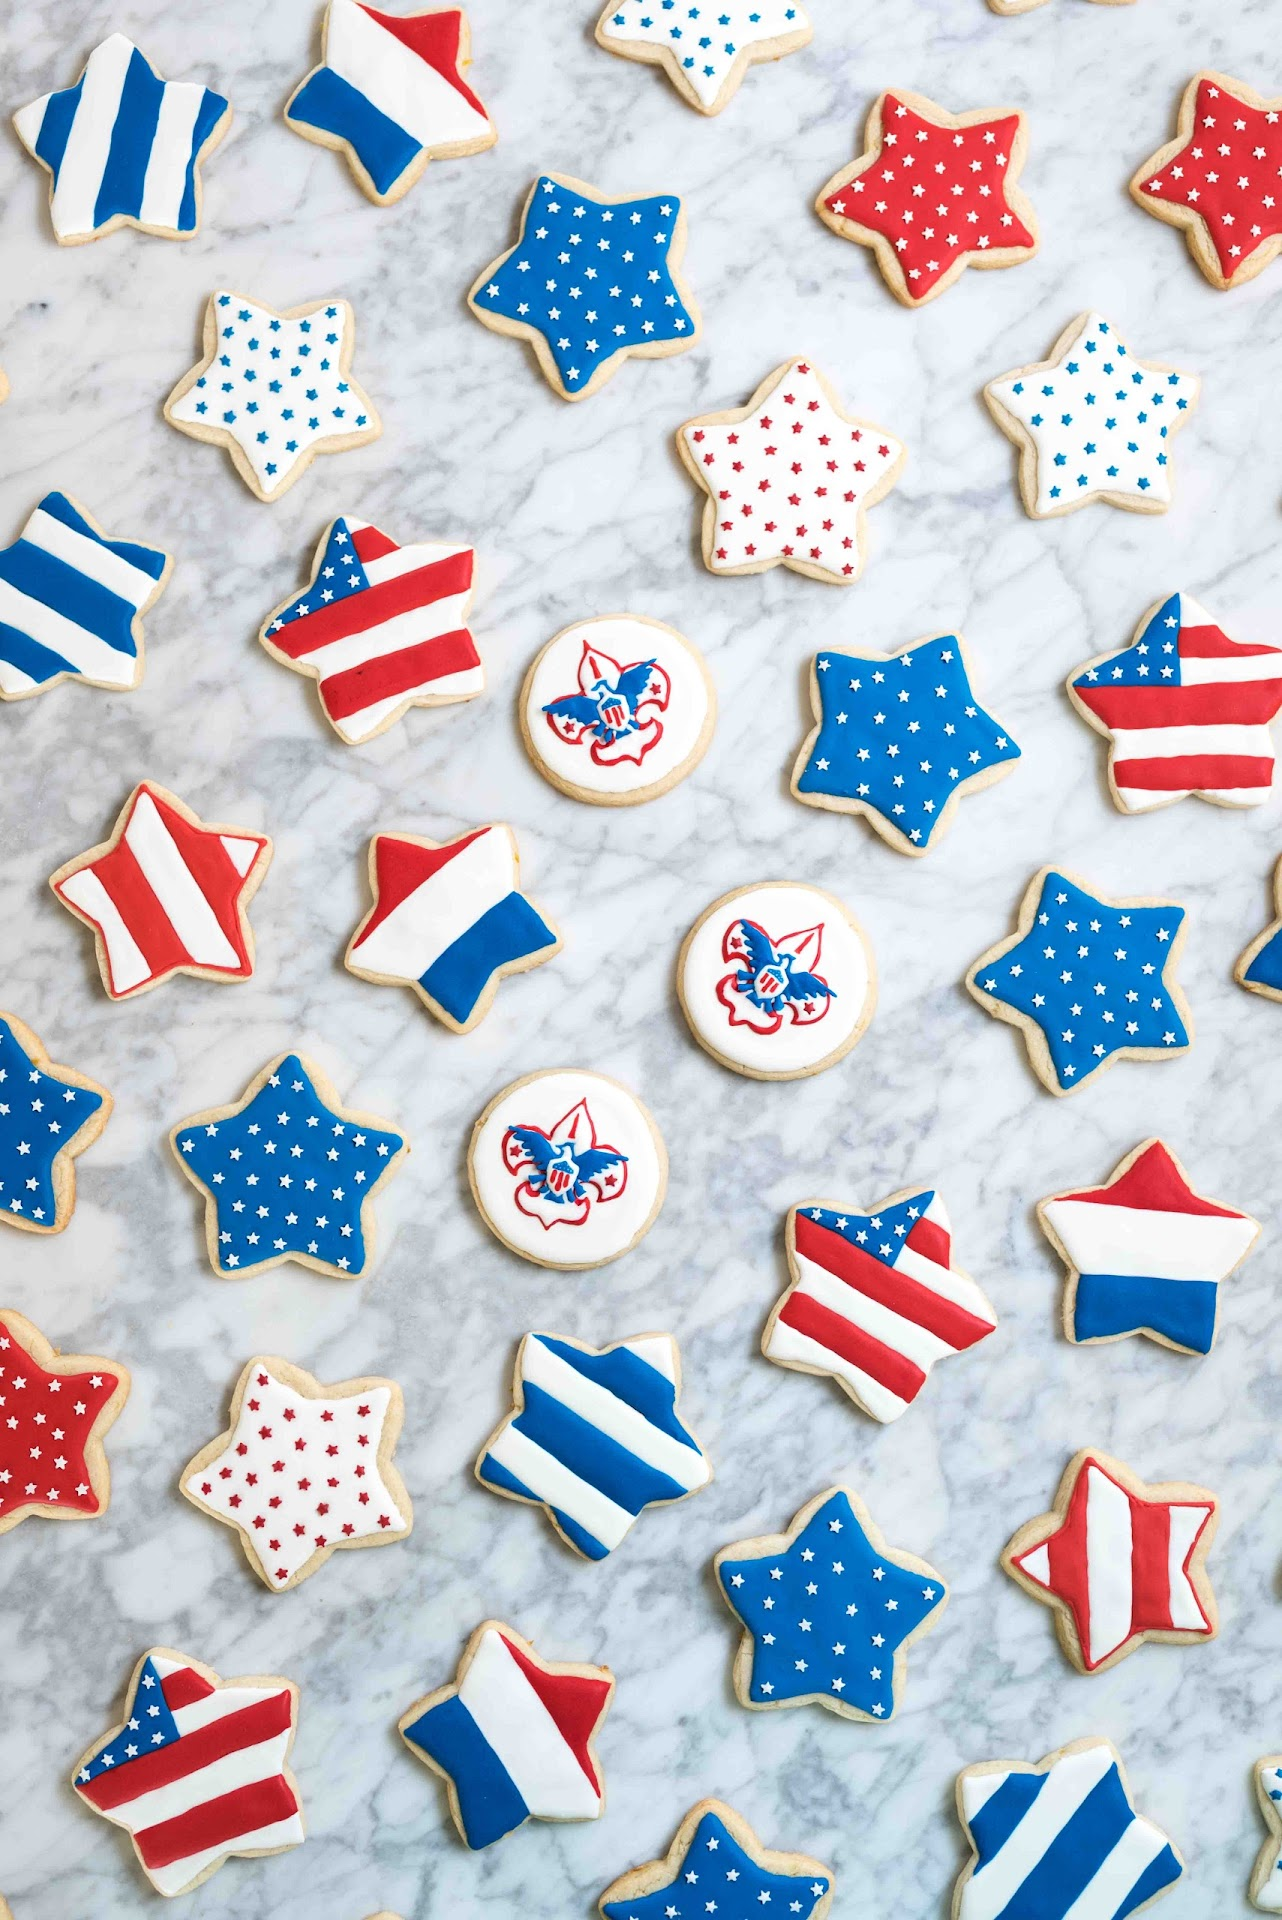 patriotic cookies, dessert, stars, cutout cookies, sugar cookies, lemon sugar cookies, best tasting sugar cookies, royal icing, tips, ideas, how to decorating sugar cookies, best royal icing, boy scout cookies, court of honor, american flag, flag cookies, 4th of july,